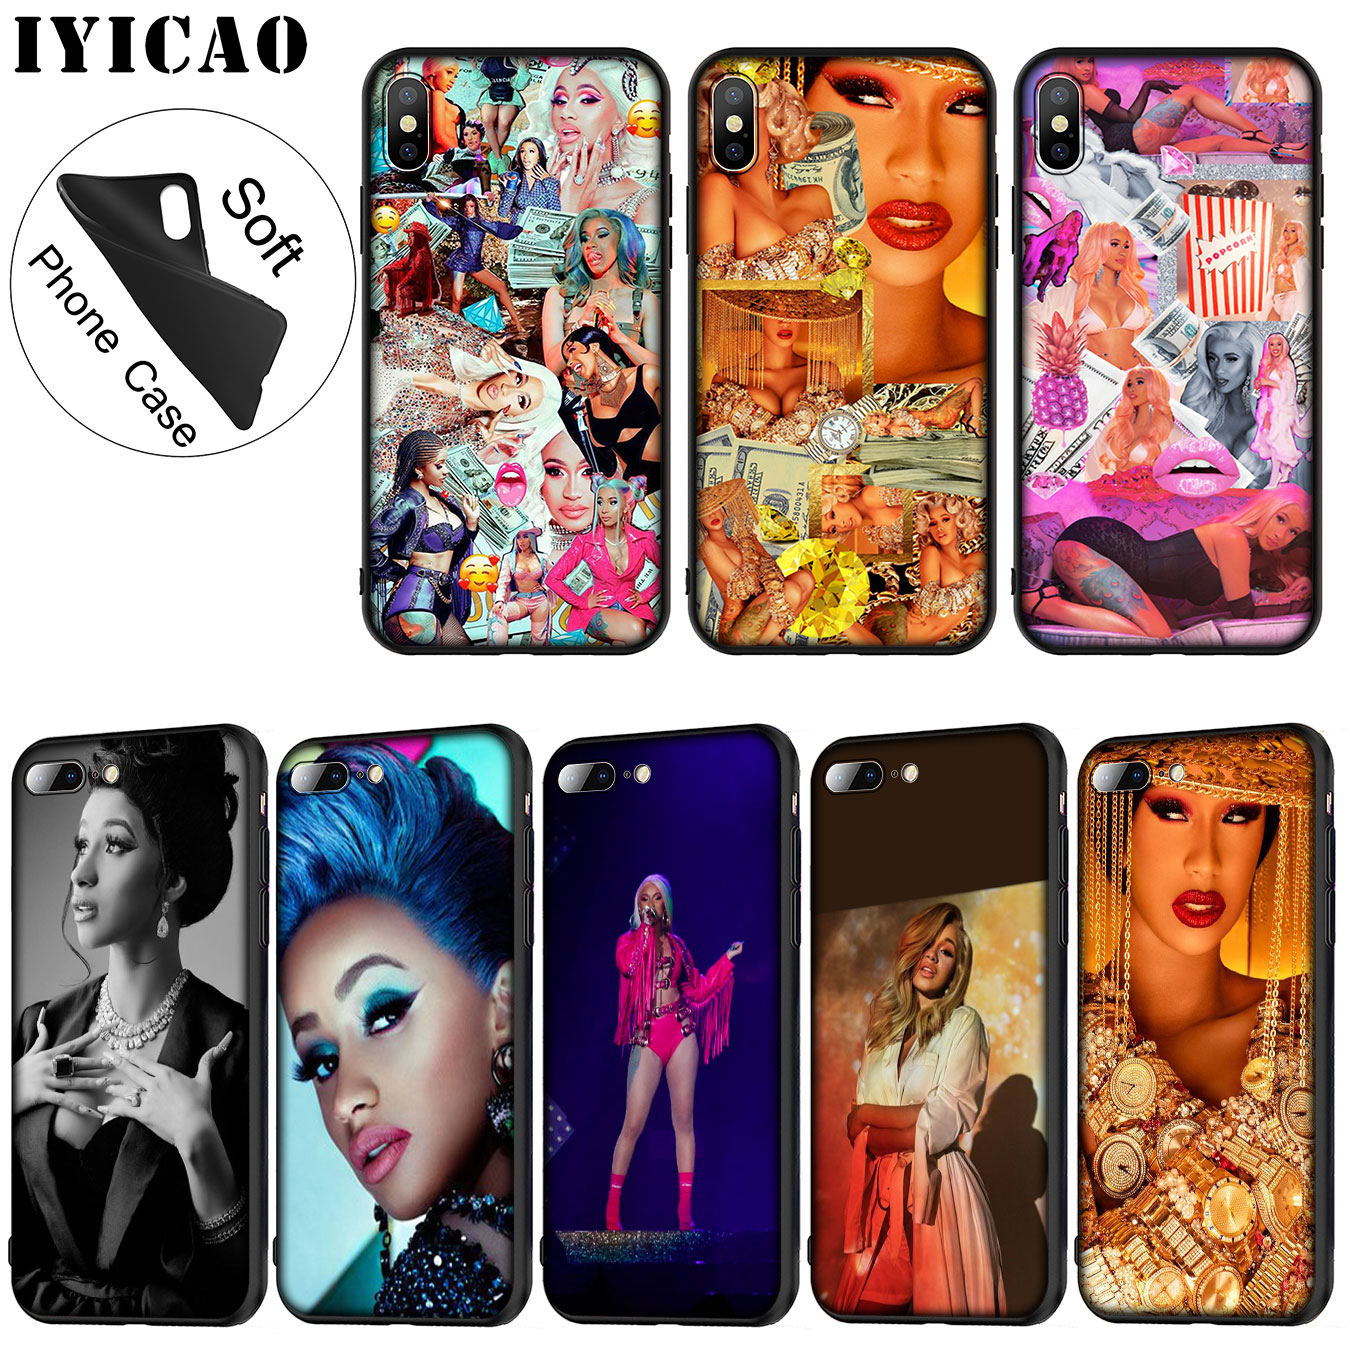 Iyicao Cartoon Doctor Nurse Hot Fashion Fun Dynamic Soft Silicone Case For Samsung Galaxy A70 A50 A40 A30 A10 M10 M20 M30 Cover Special Buy Phone Bags & Cases Cellphones & Telecommunications